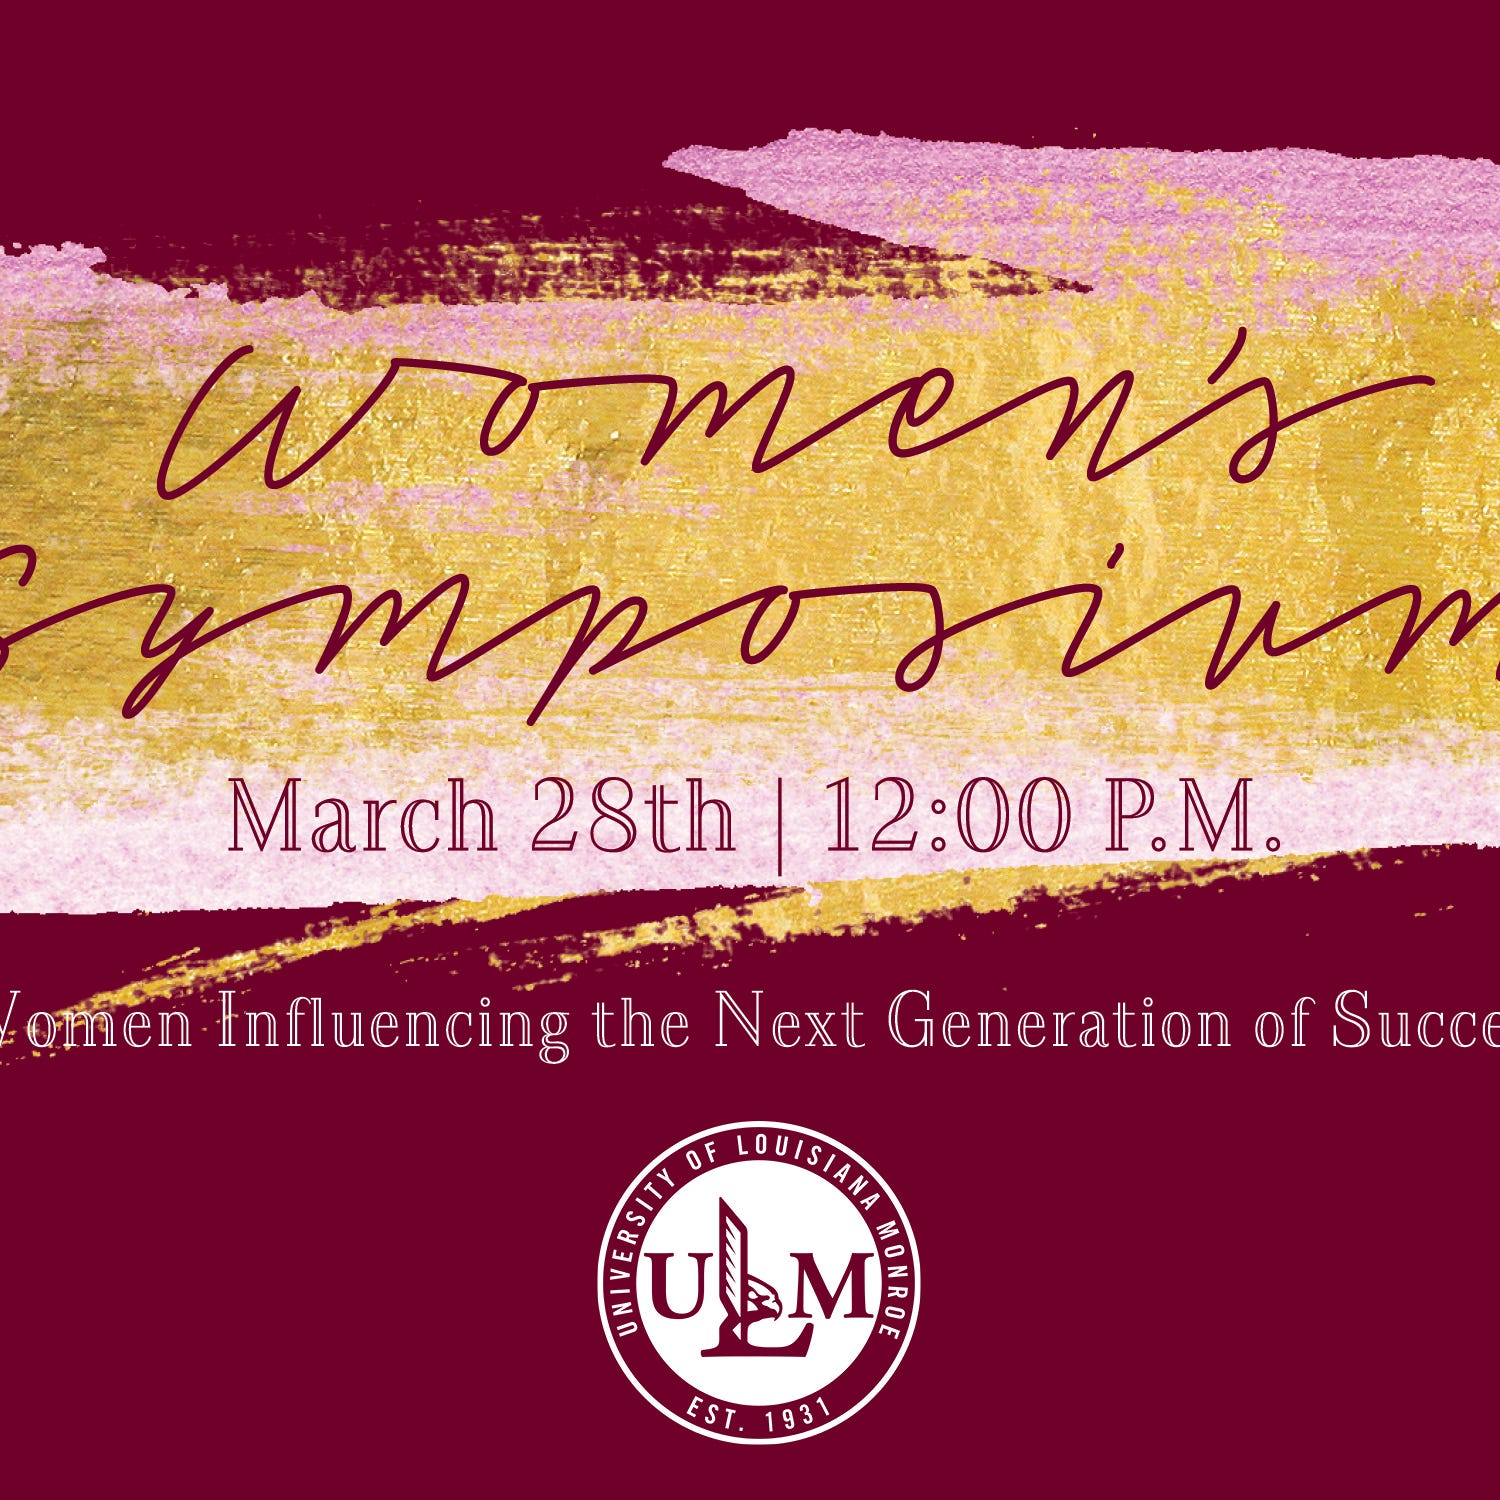 ULM to host Women's Symposium on March 27